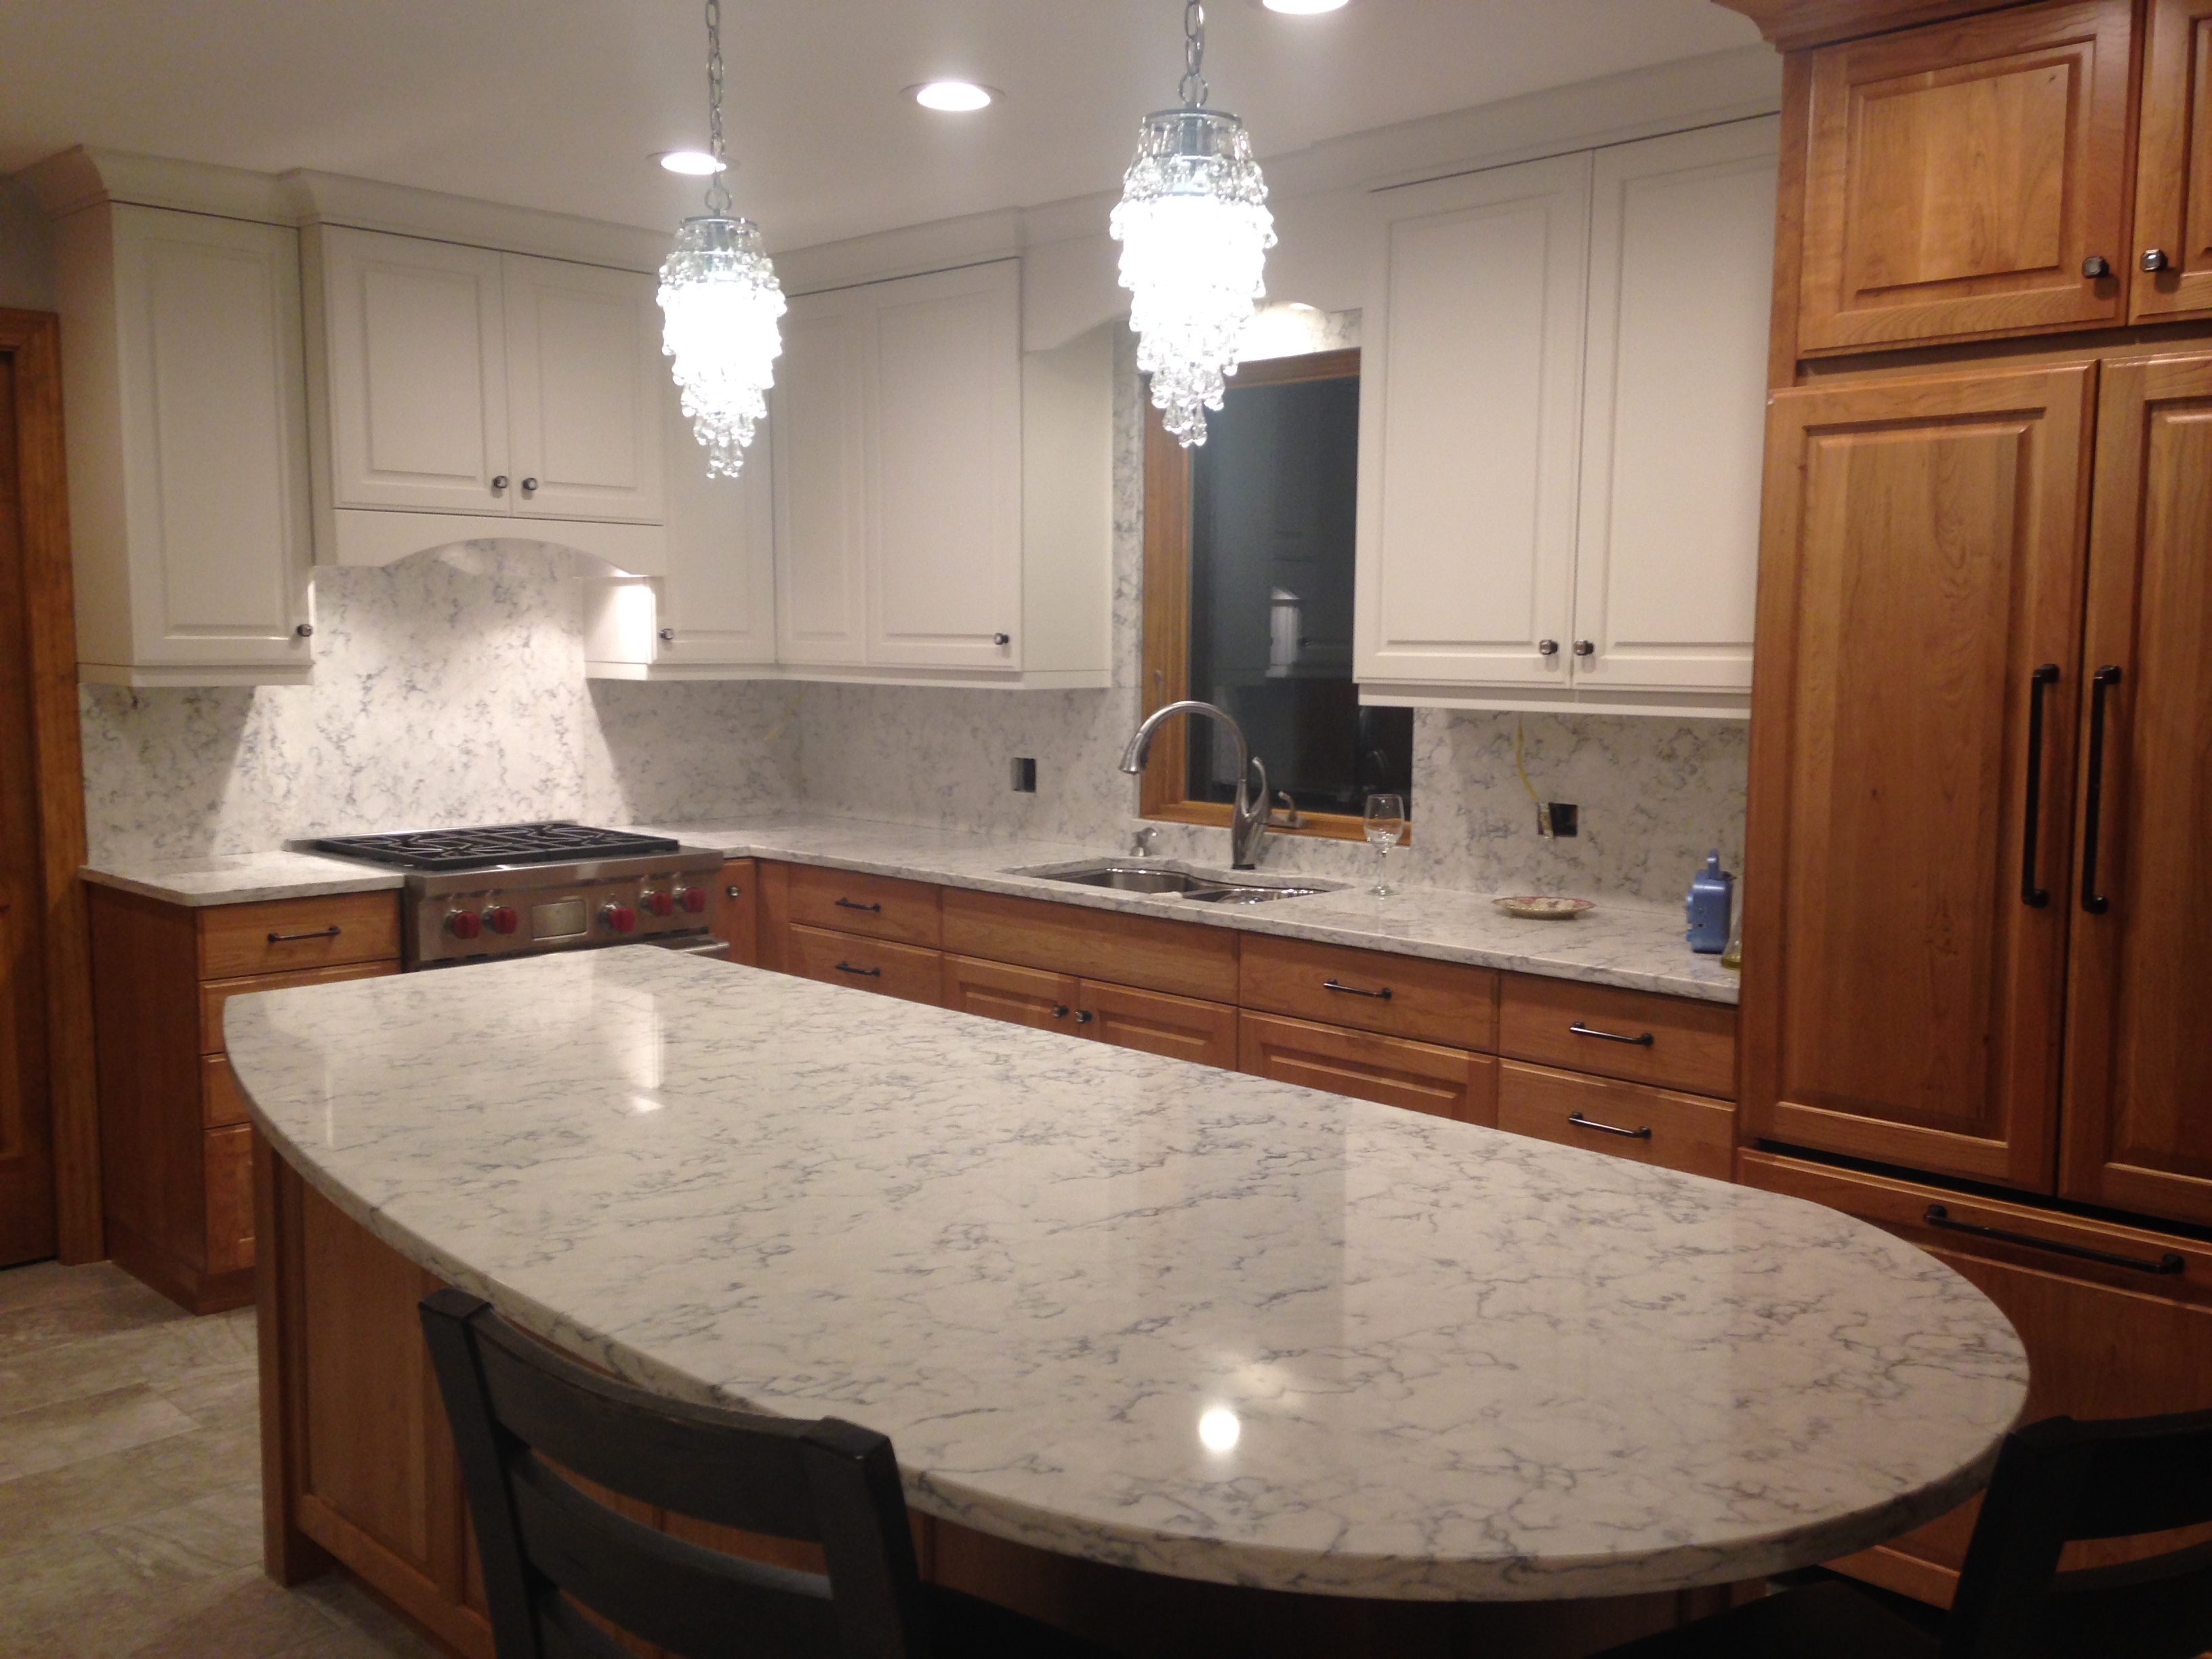 country grey cabinets distributors countertopcarraranwhite inspirations maple kitchen countertop countertops images with full granite size quartz white black carrara of enticing